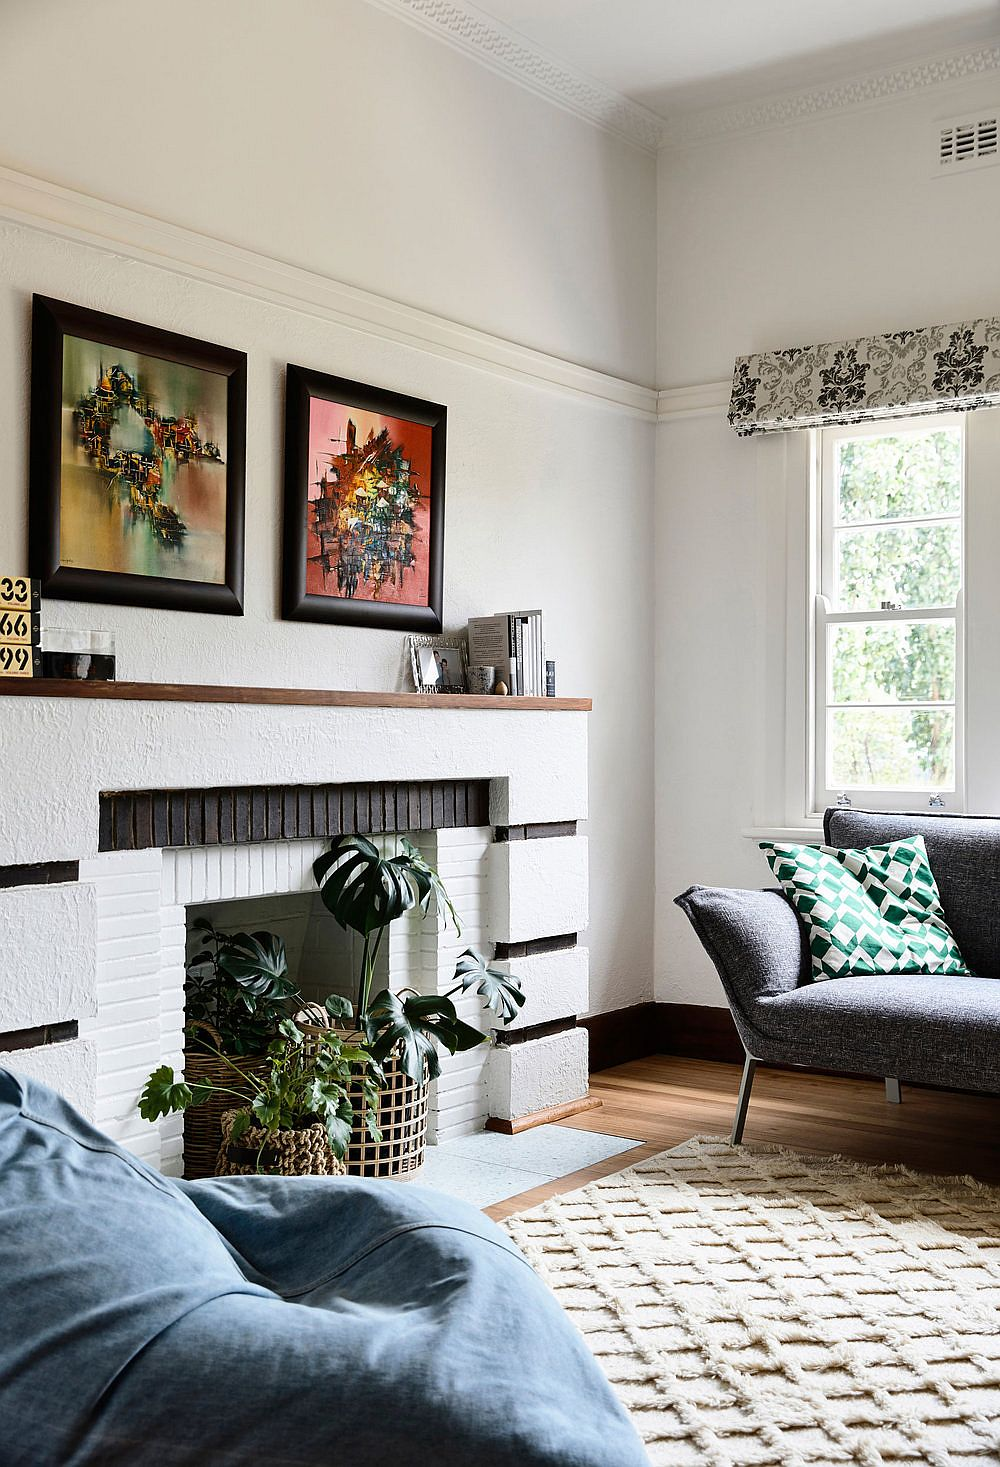 Some-of-the-original-elements-of-the-Art-Deco-home-have-been-preserved-and-enhanced-like-the-fireplace-in-the-living-room-50883